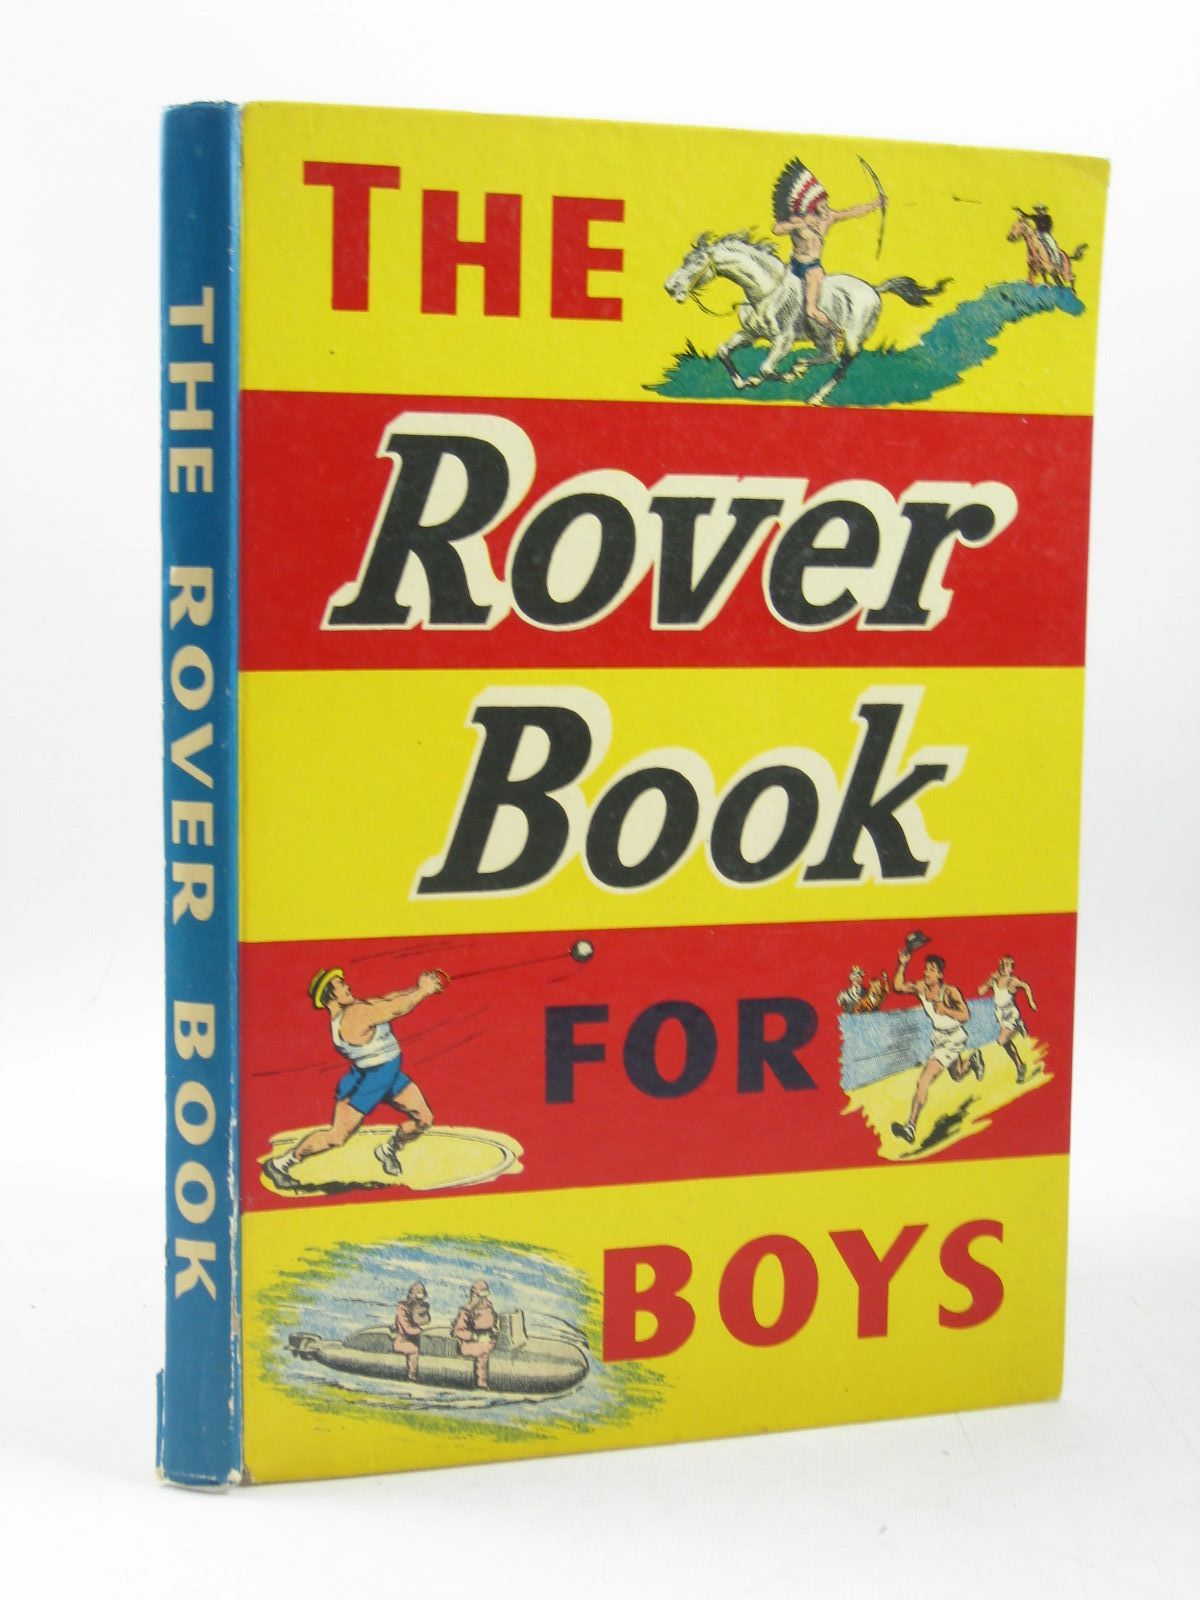 Photo of THE ROVER BOOK FOR BOYS 1958 published by D.C. Thomson & Co Ltd. (STOCK CODE: 1503681)  for sale by Stella & Rose's Books